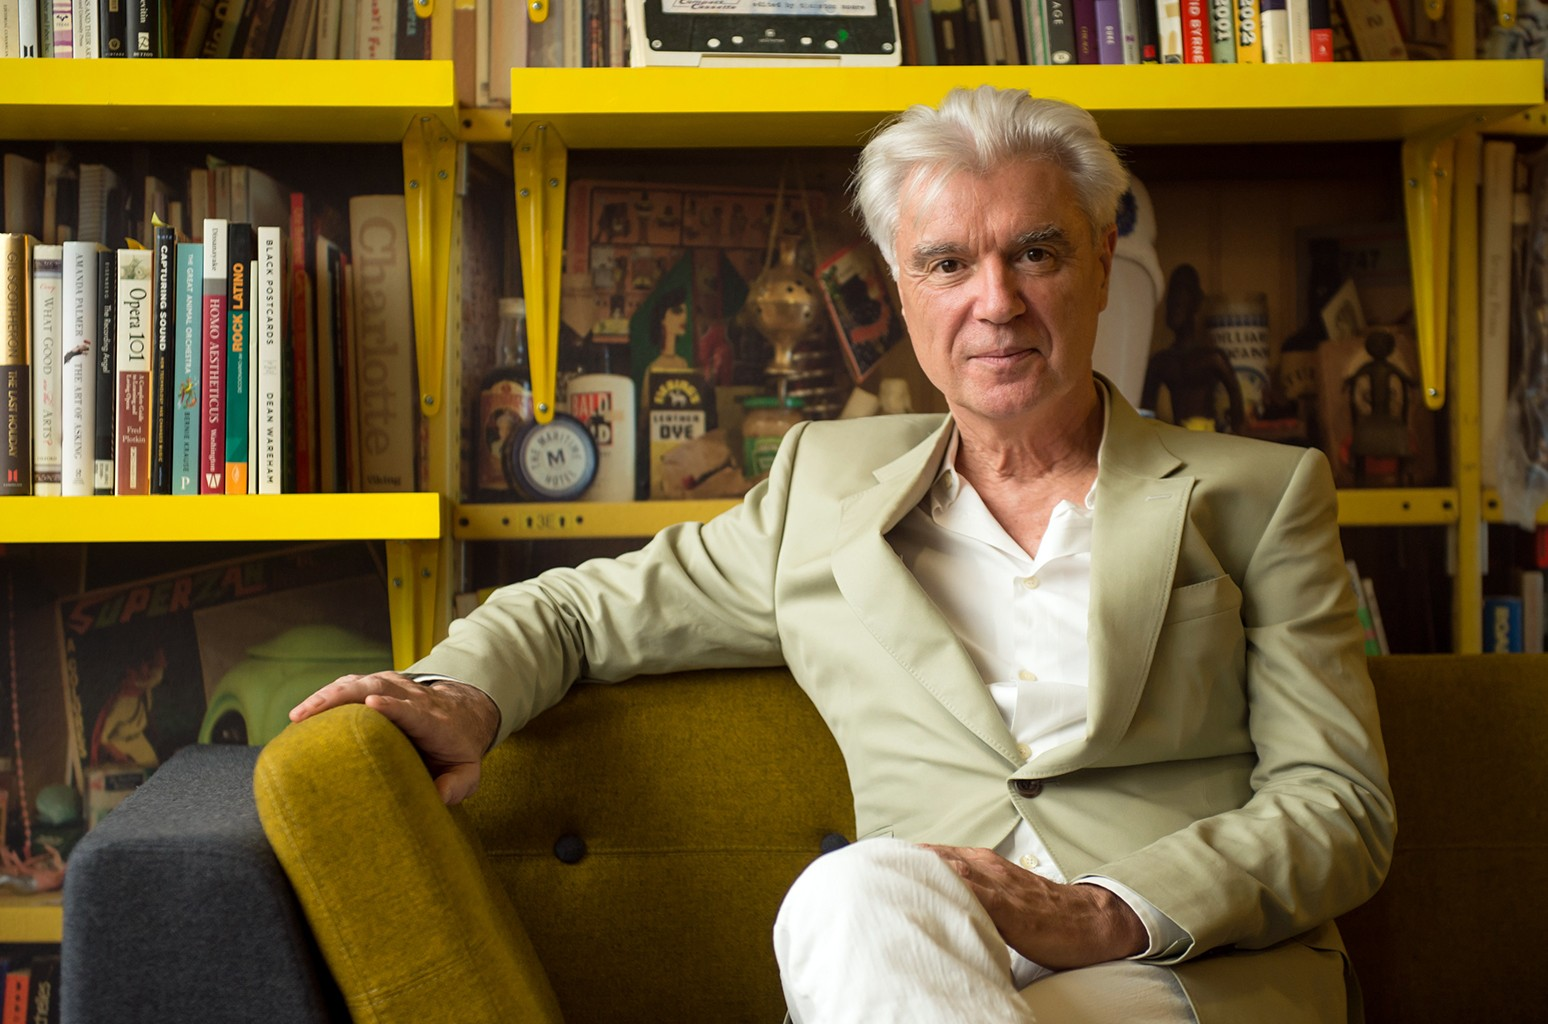 David Byrne photographed at Southbank Centre on Aug. 17, 2015 in London.